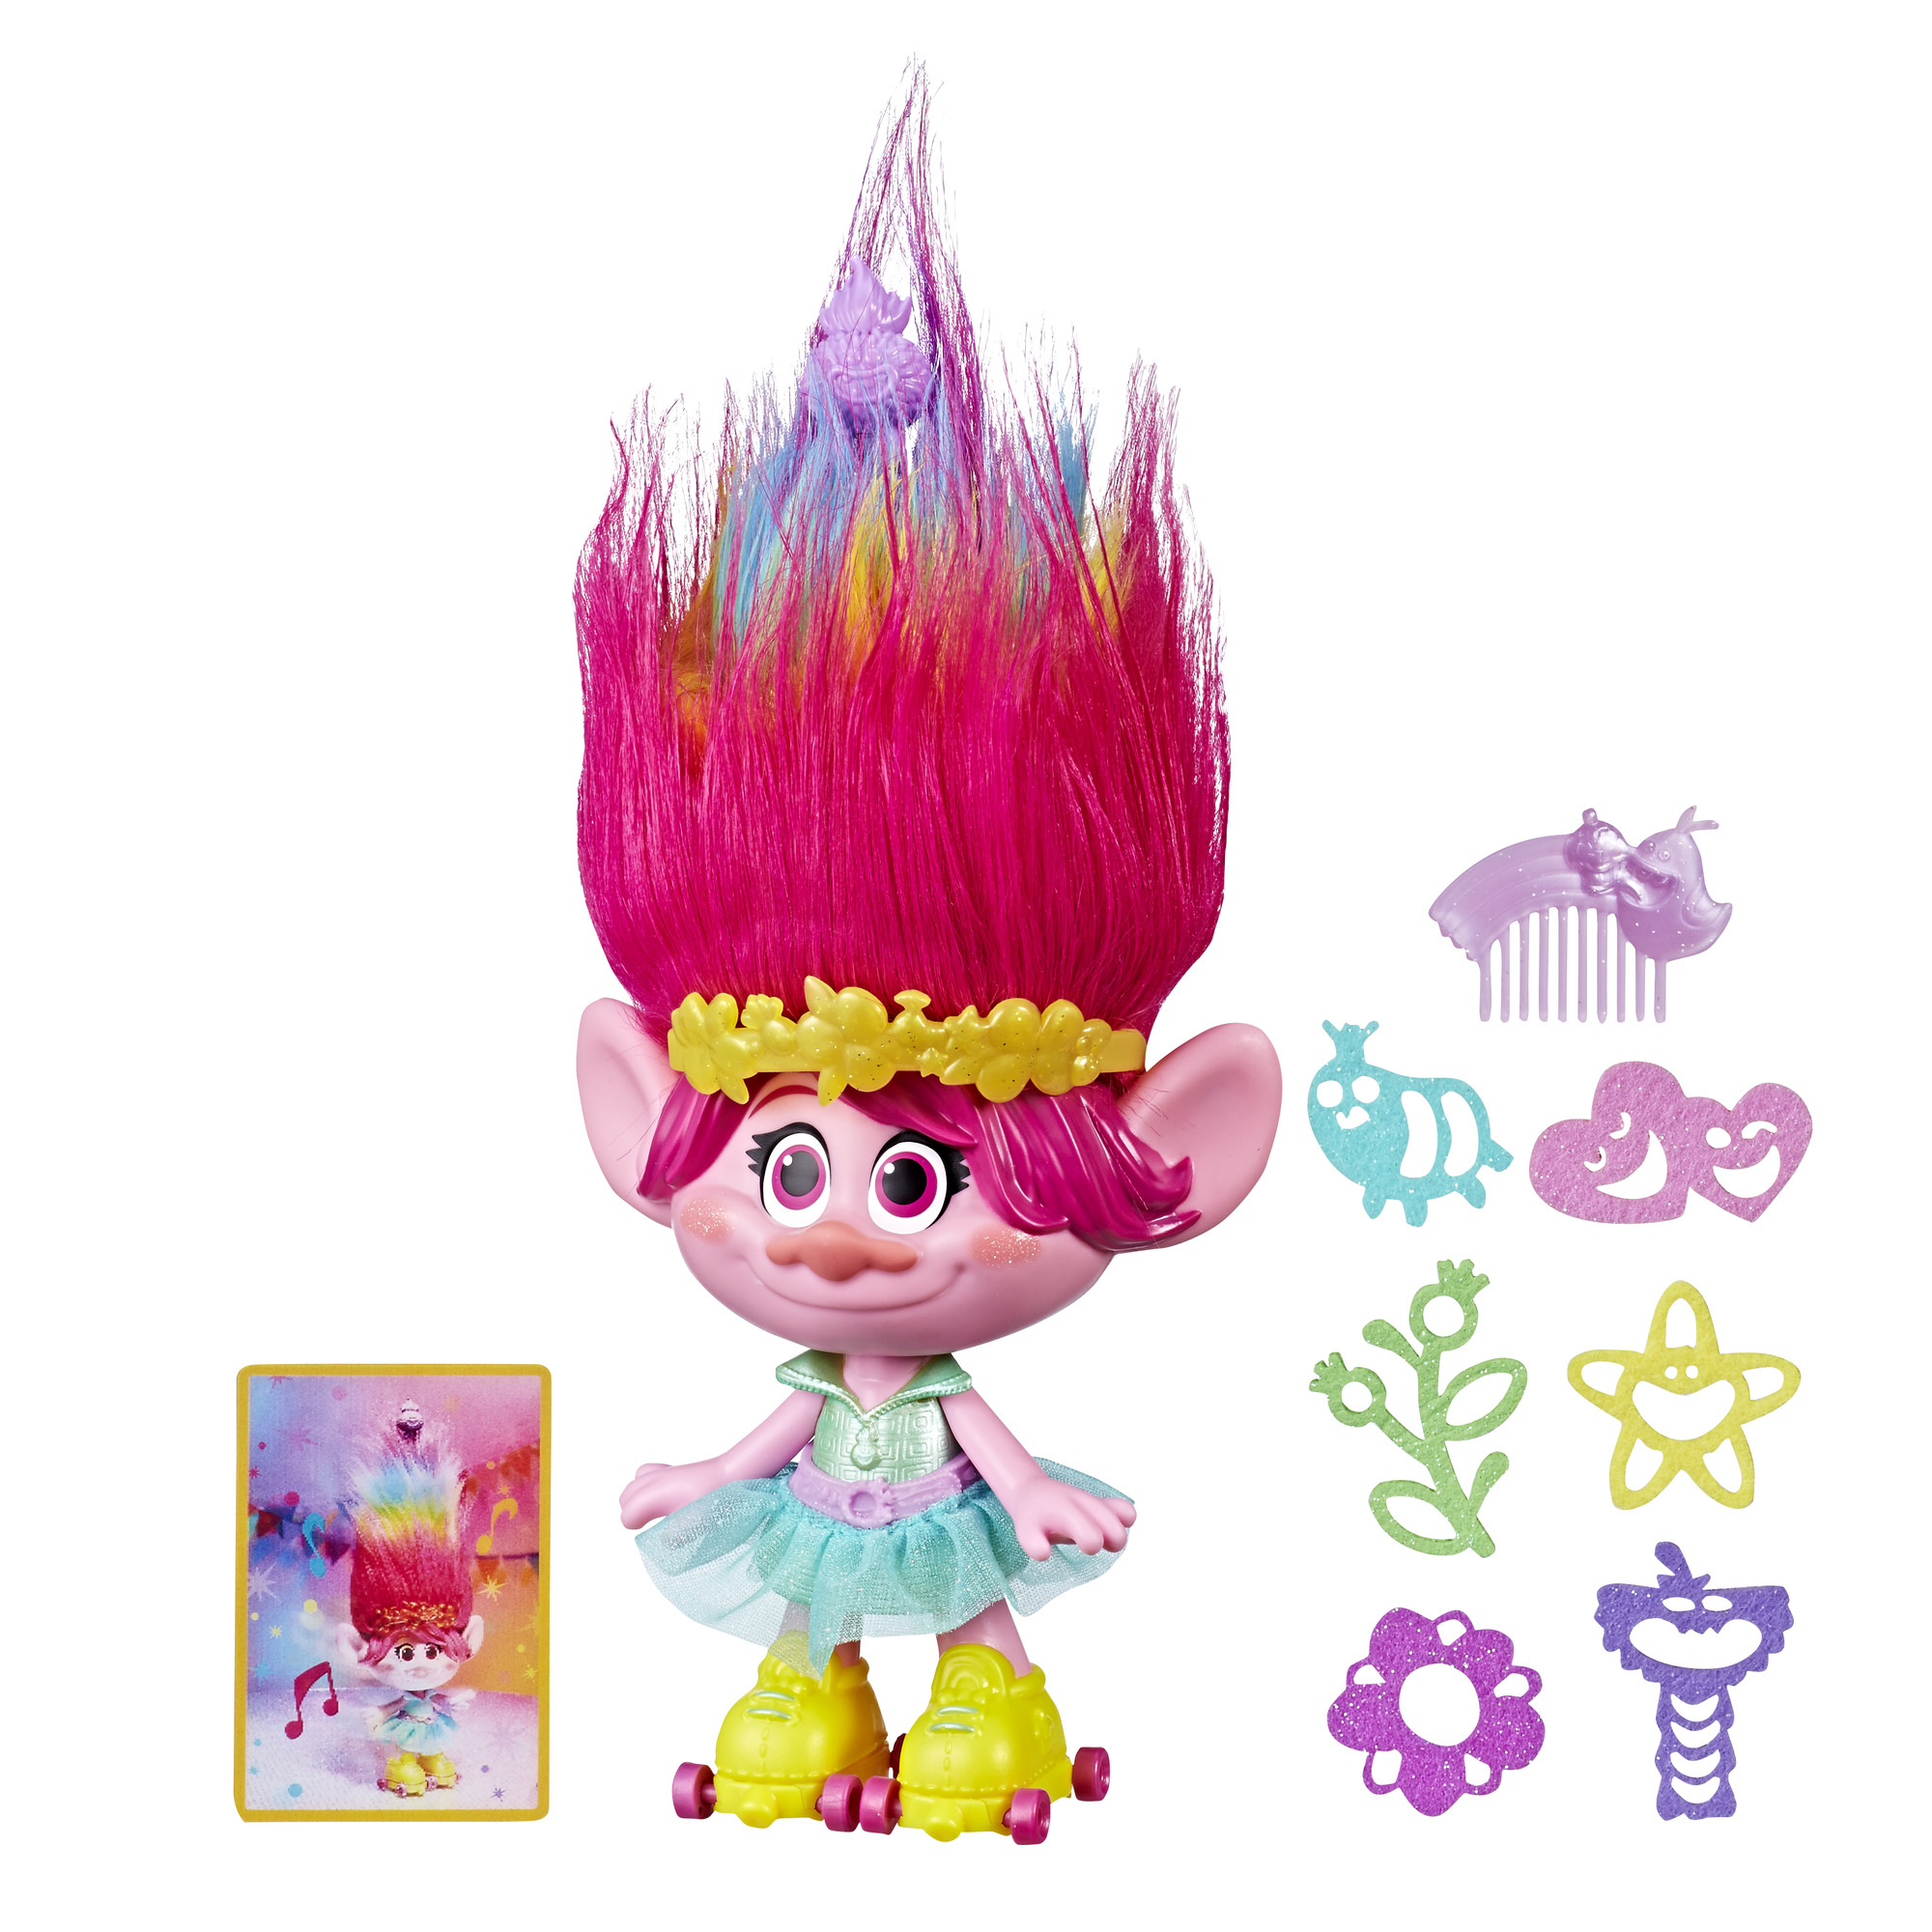 Dreamworks Trolls Party Hair Poppy Musical Doll Walmart